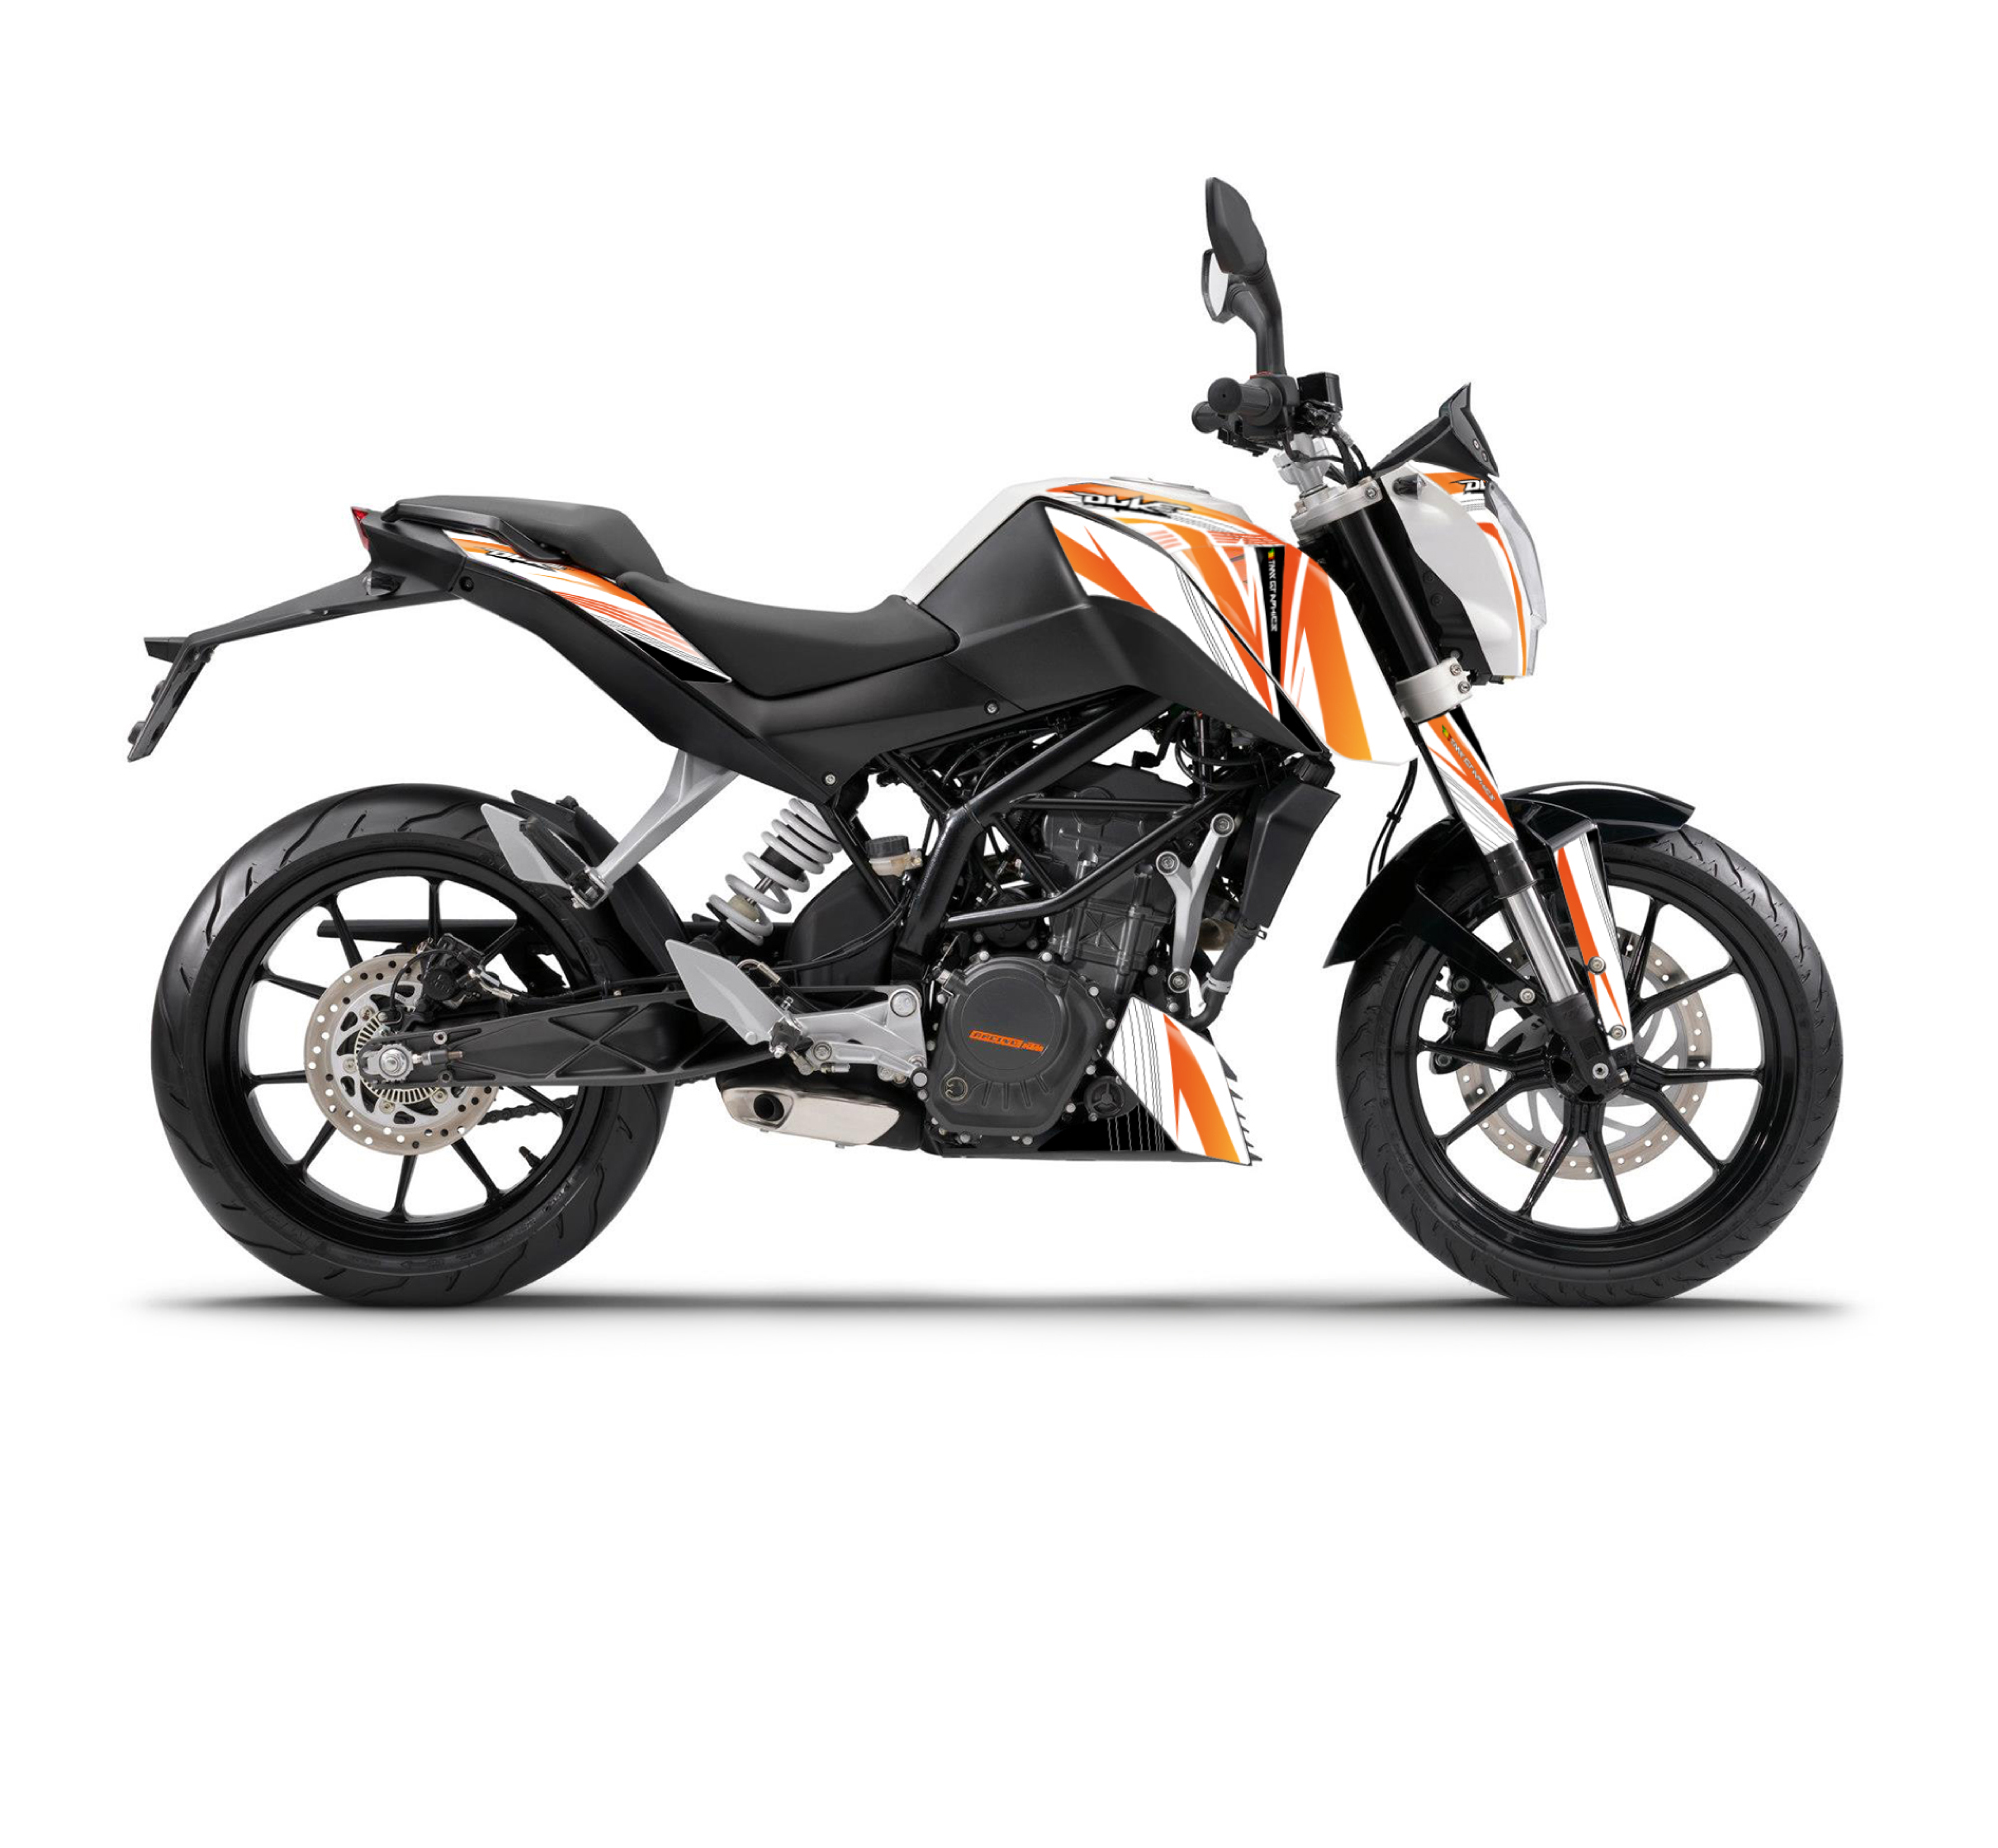 ktm duke 125 390 the one graphics series white tmx. Black Bedroom Furniture Sets. Home Design Ideas